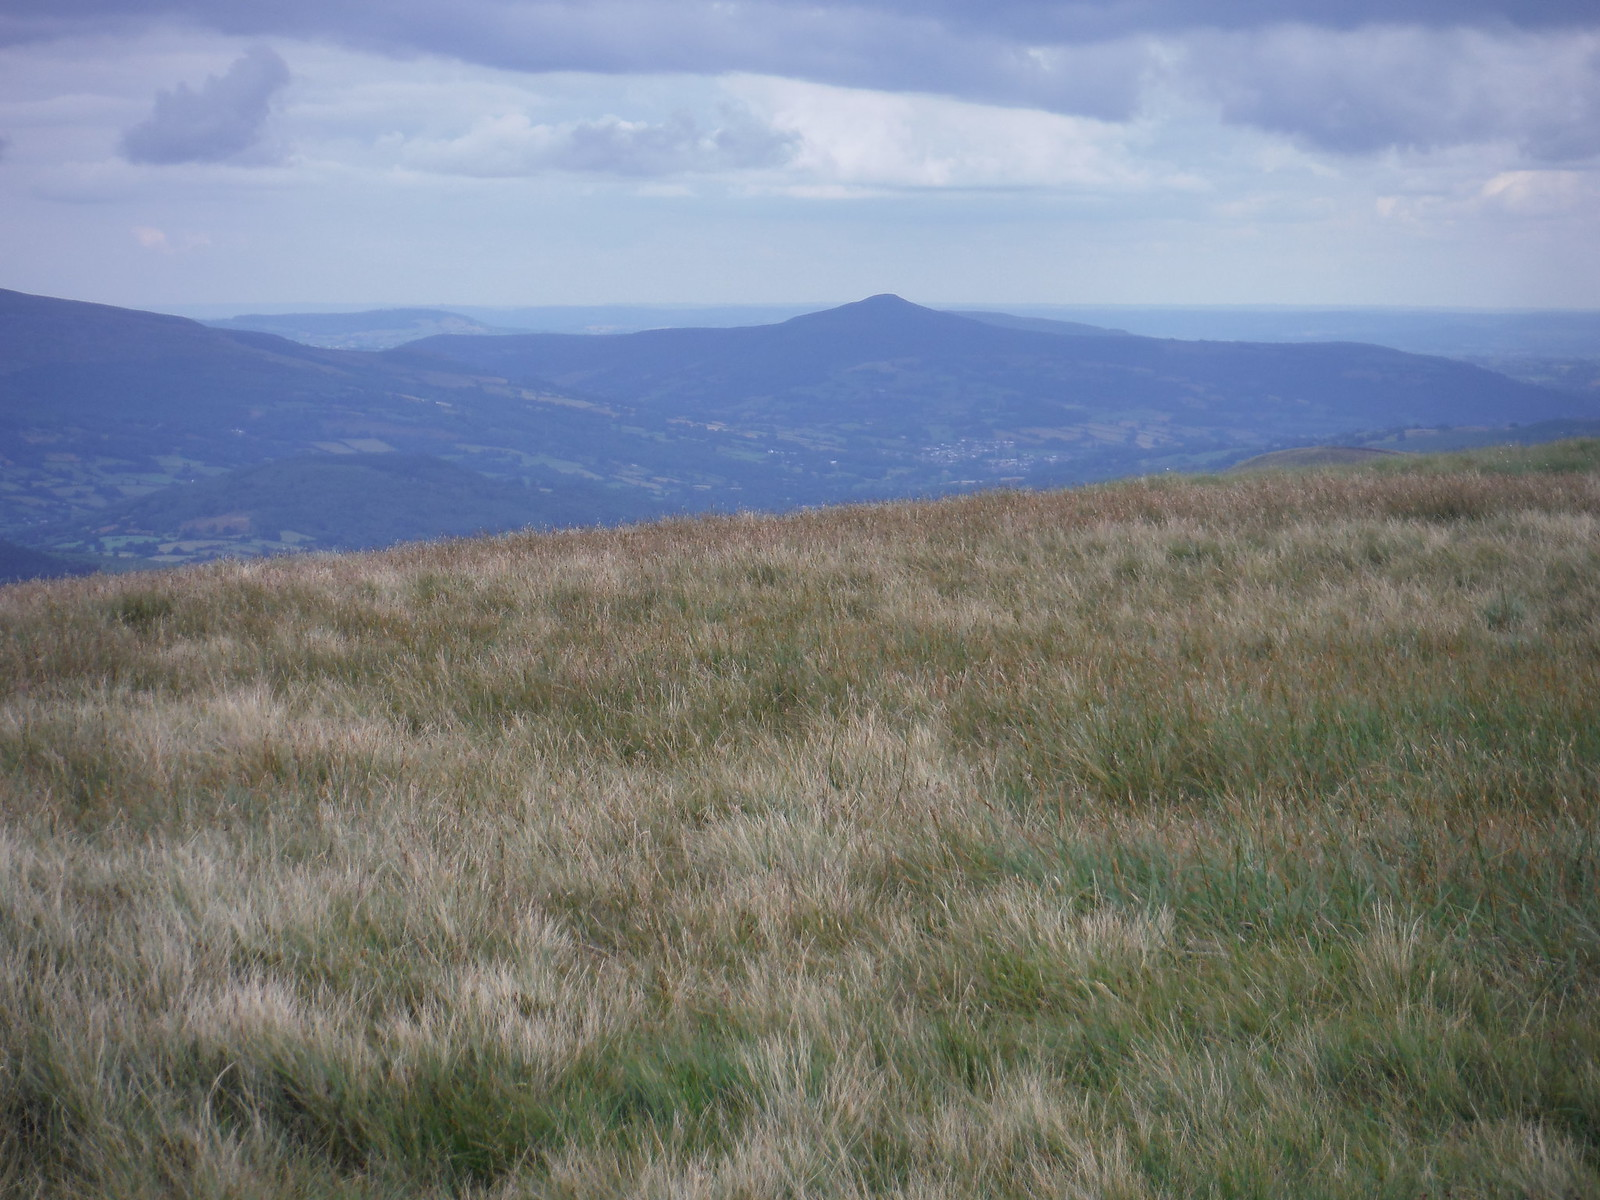 Sugarloaf/Pen y Fâl, from Waun Rydd SWC Walk 278 Breacon Beacons Horseshoe - Bannau Brycheiniog (Extension to Waun Rydd)